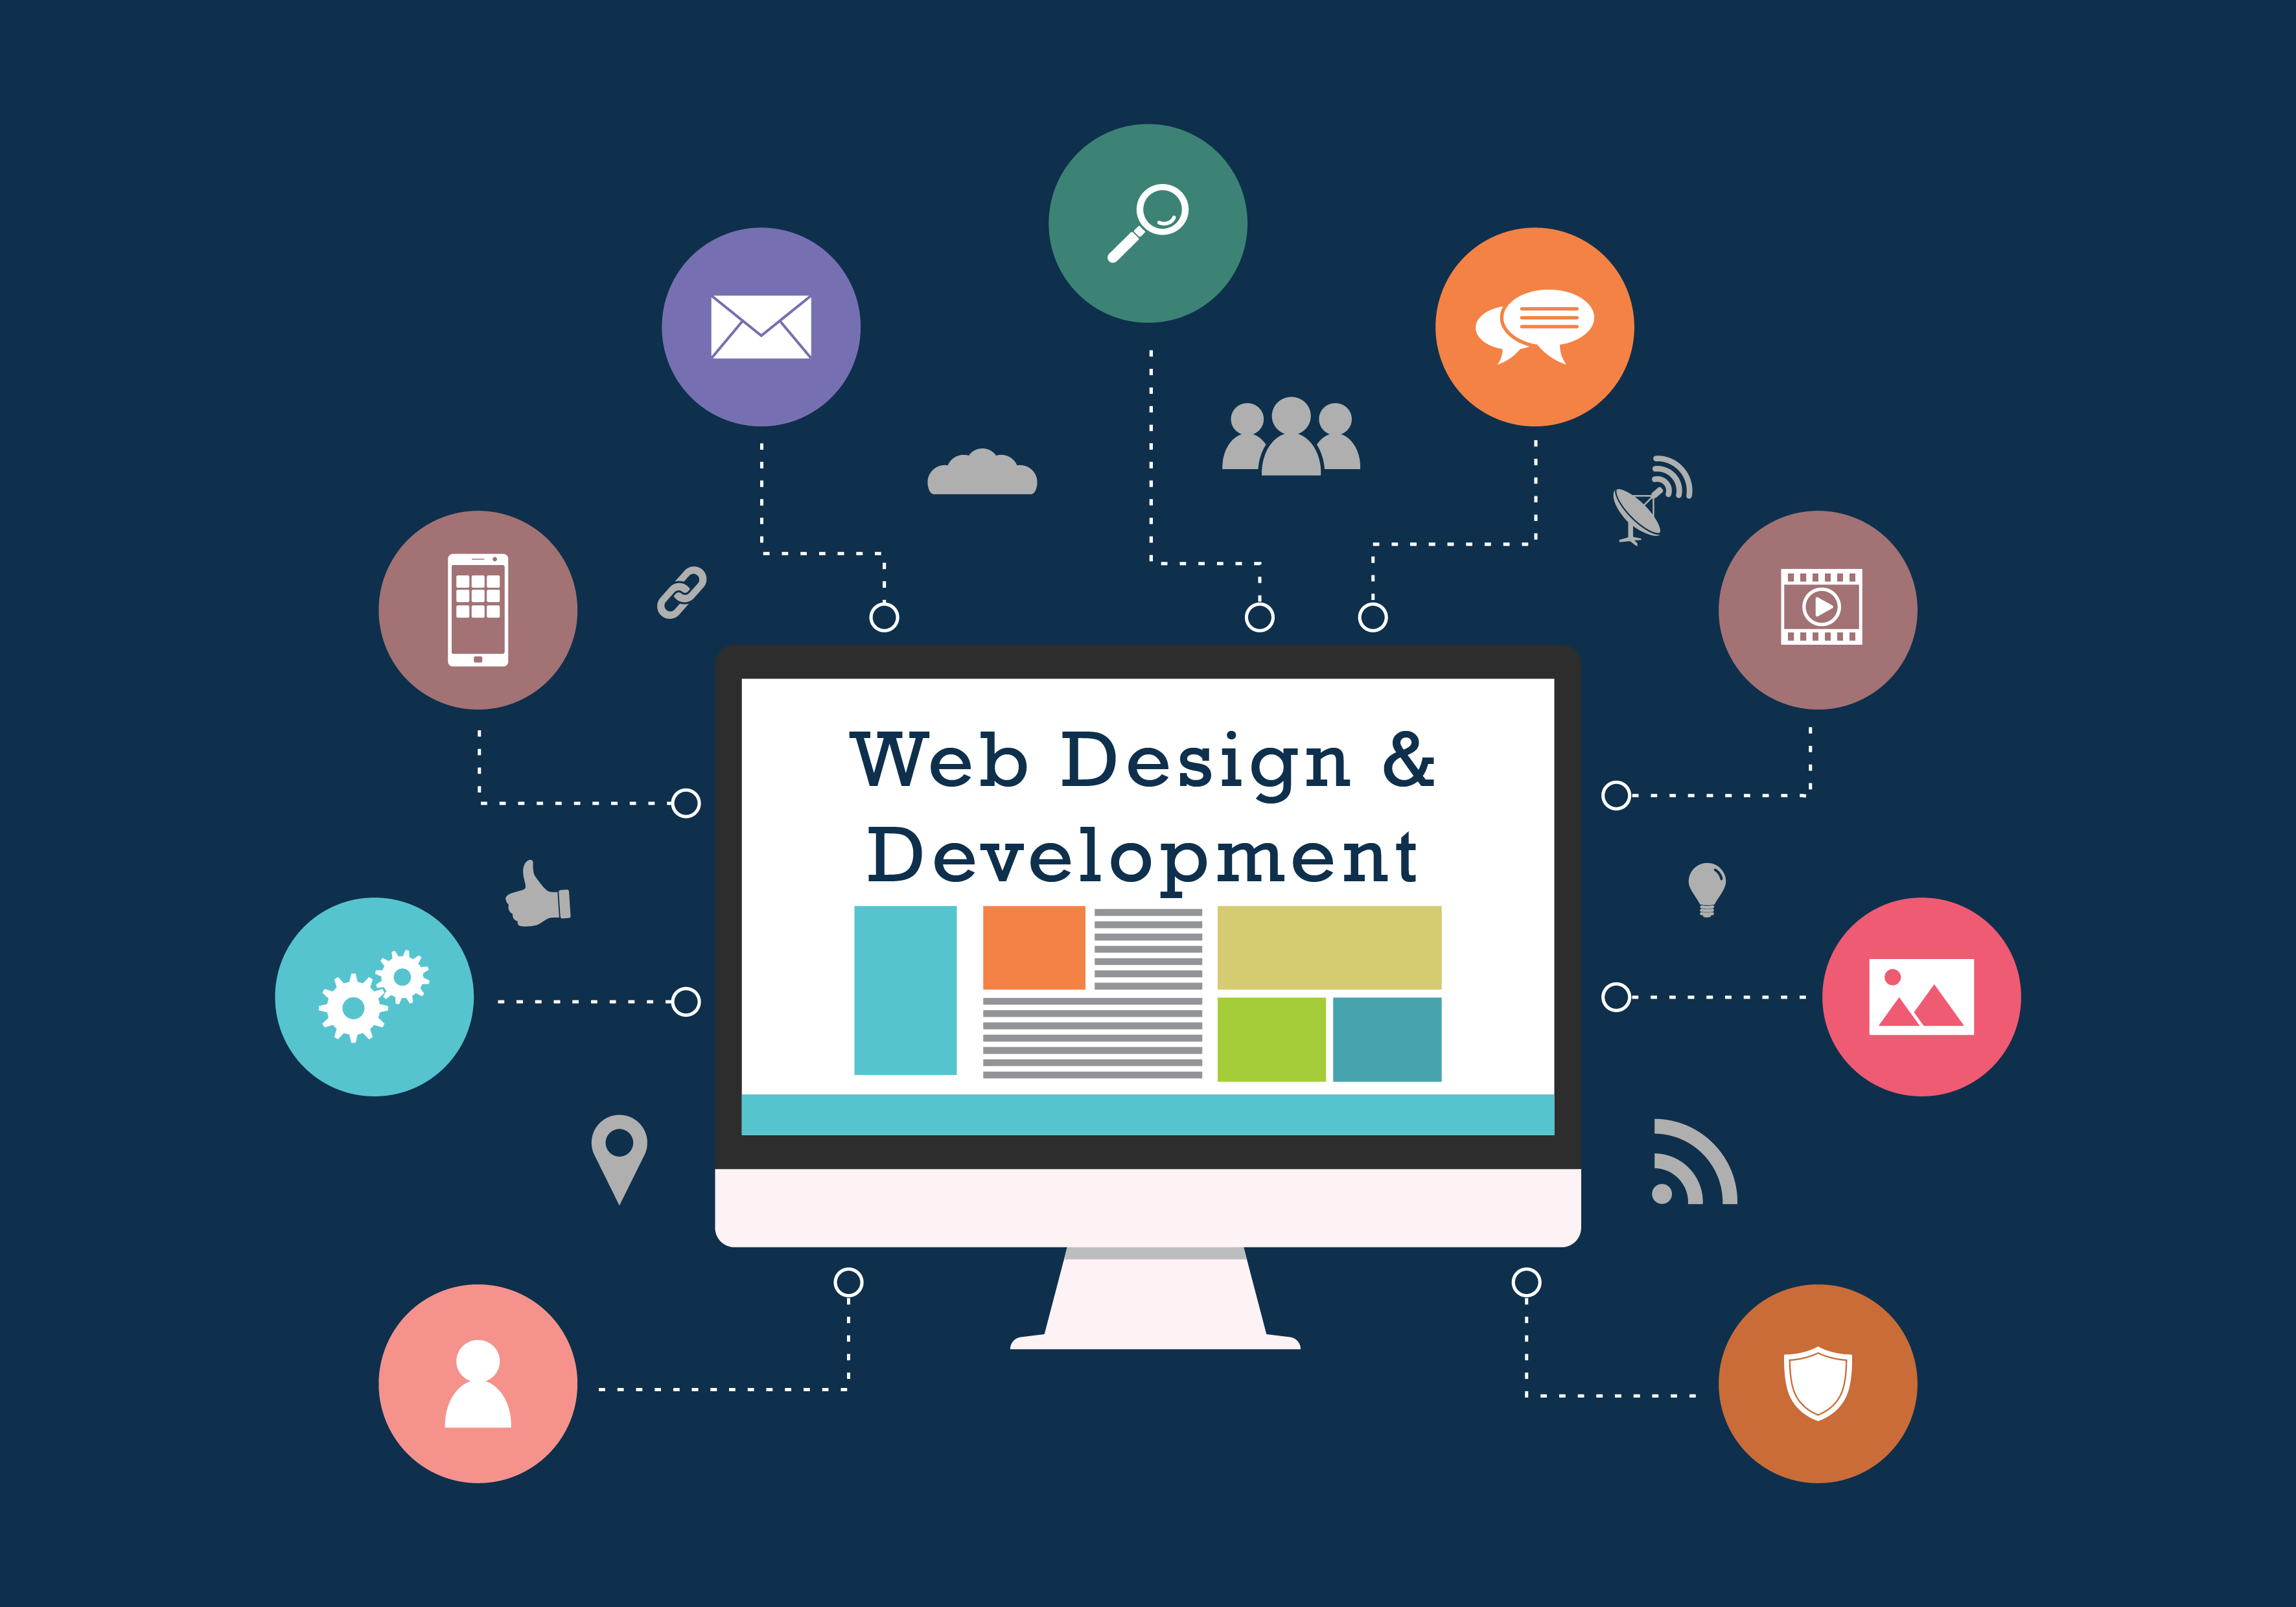 Web Development Web Development Design Web Design Agency Web Design Company